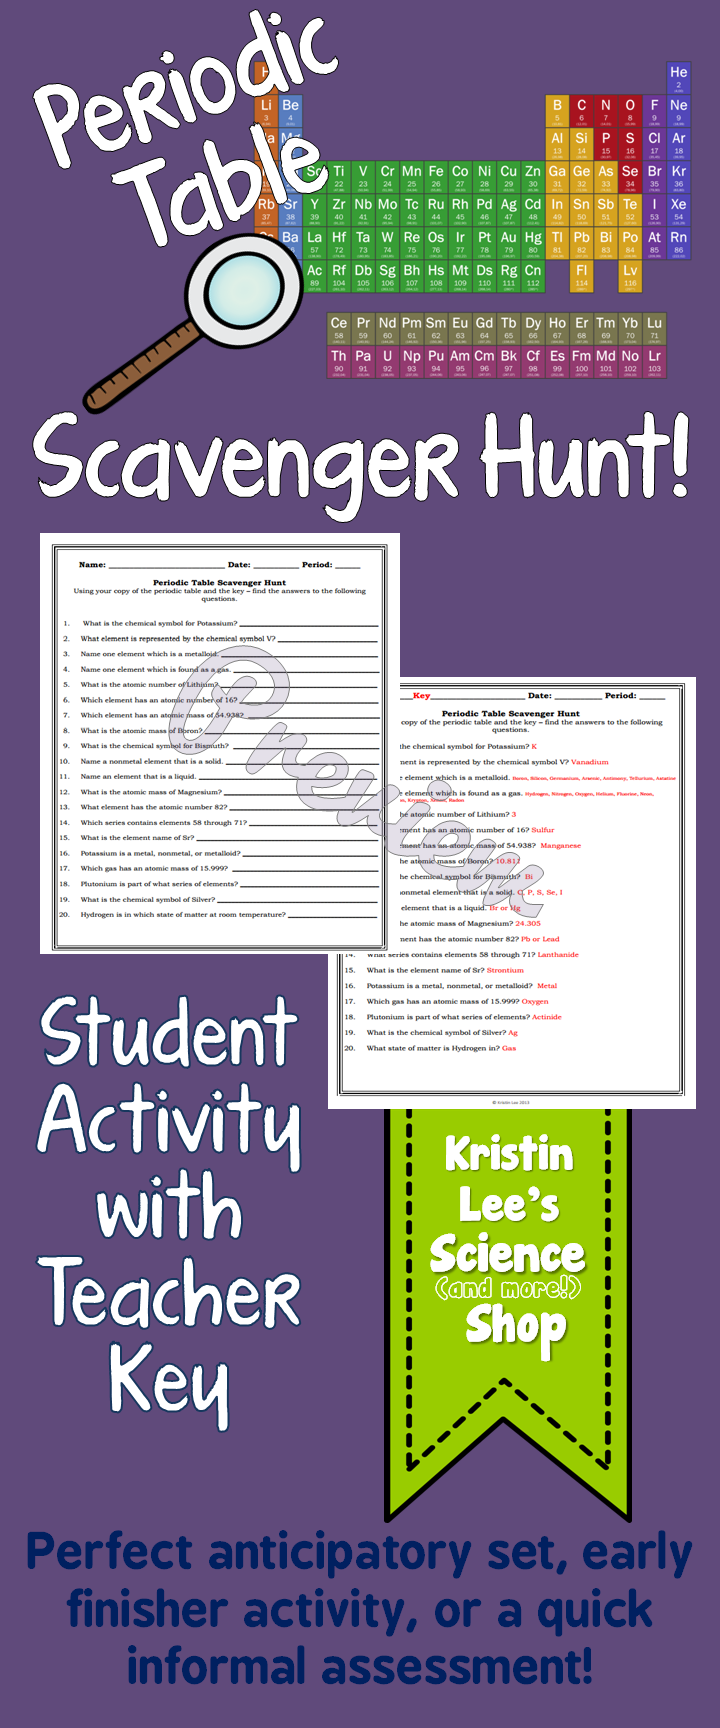 worksheet Periodic Table Scavenger Hunt Worksheet Middle School periodic table scavenger hunt middle school science class activity this 20 question hunt